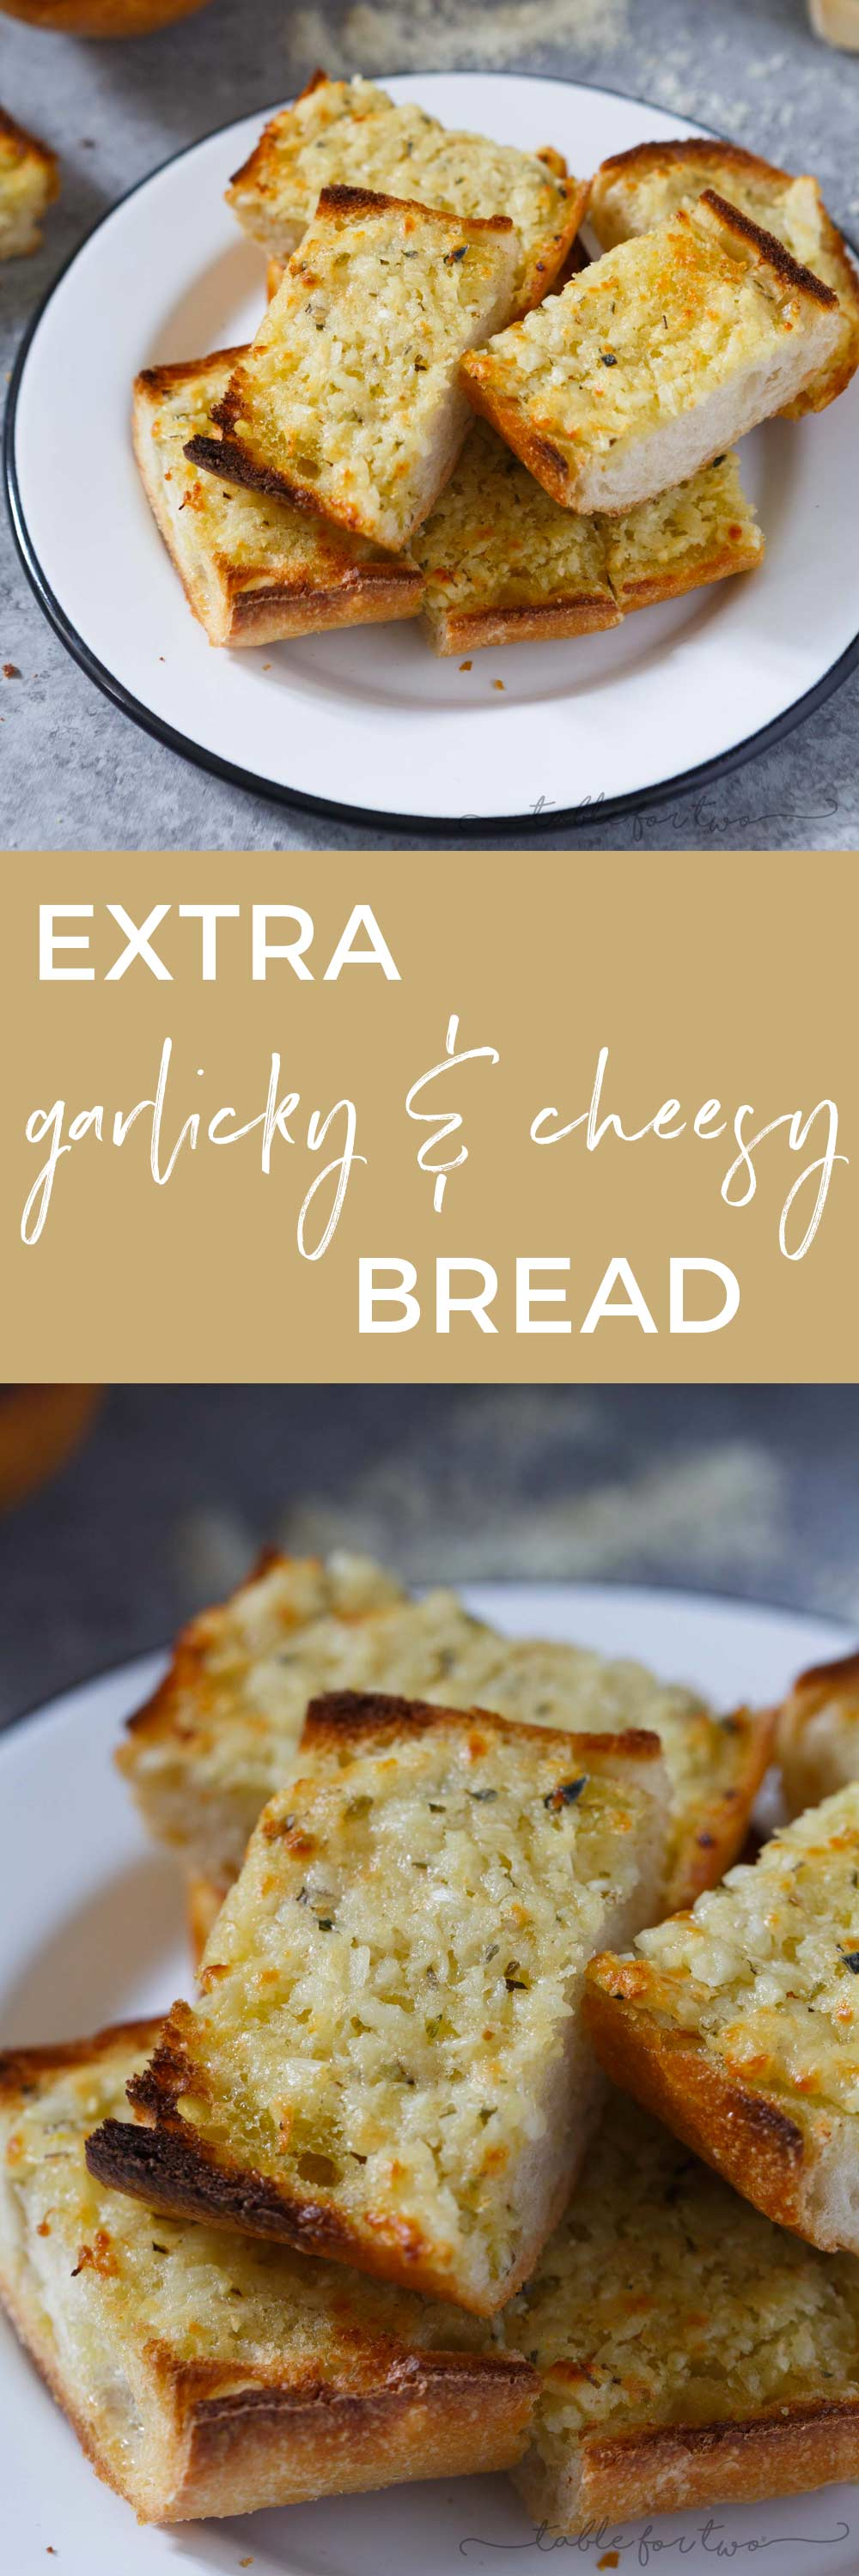 The title of this recipe says it all. Kiss me if you dare because after noshing on this extra garlicky and cheesy bread, you're probably going to second guess it. However, eating this bread is 100% worth the garlicky breath.